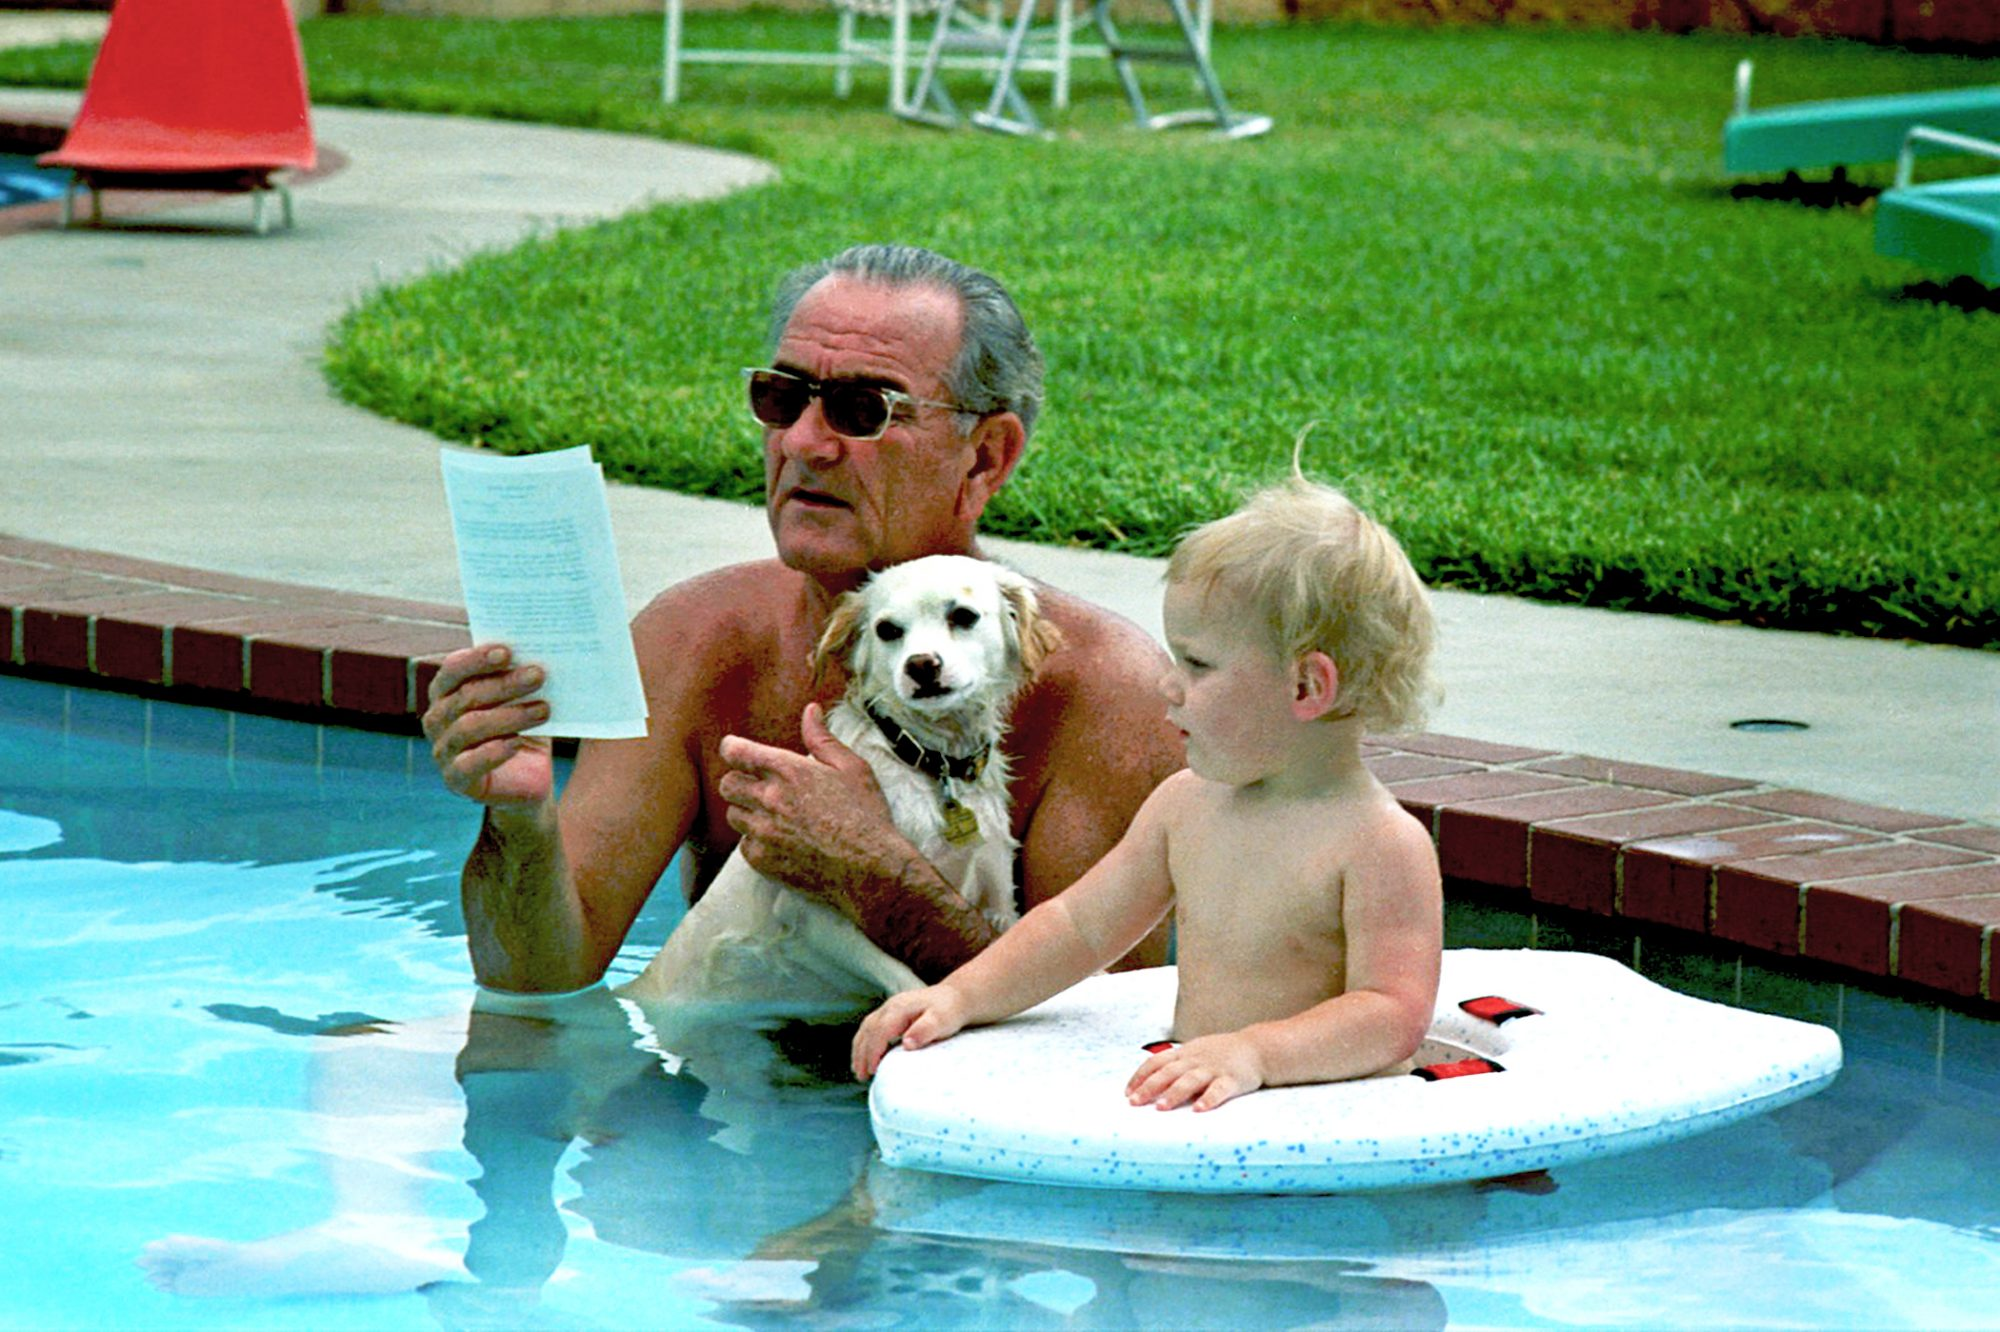 Photograph of Lyndon B. Johnson holding a white dog in a pool next to child